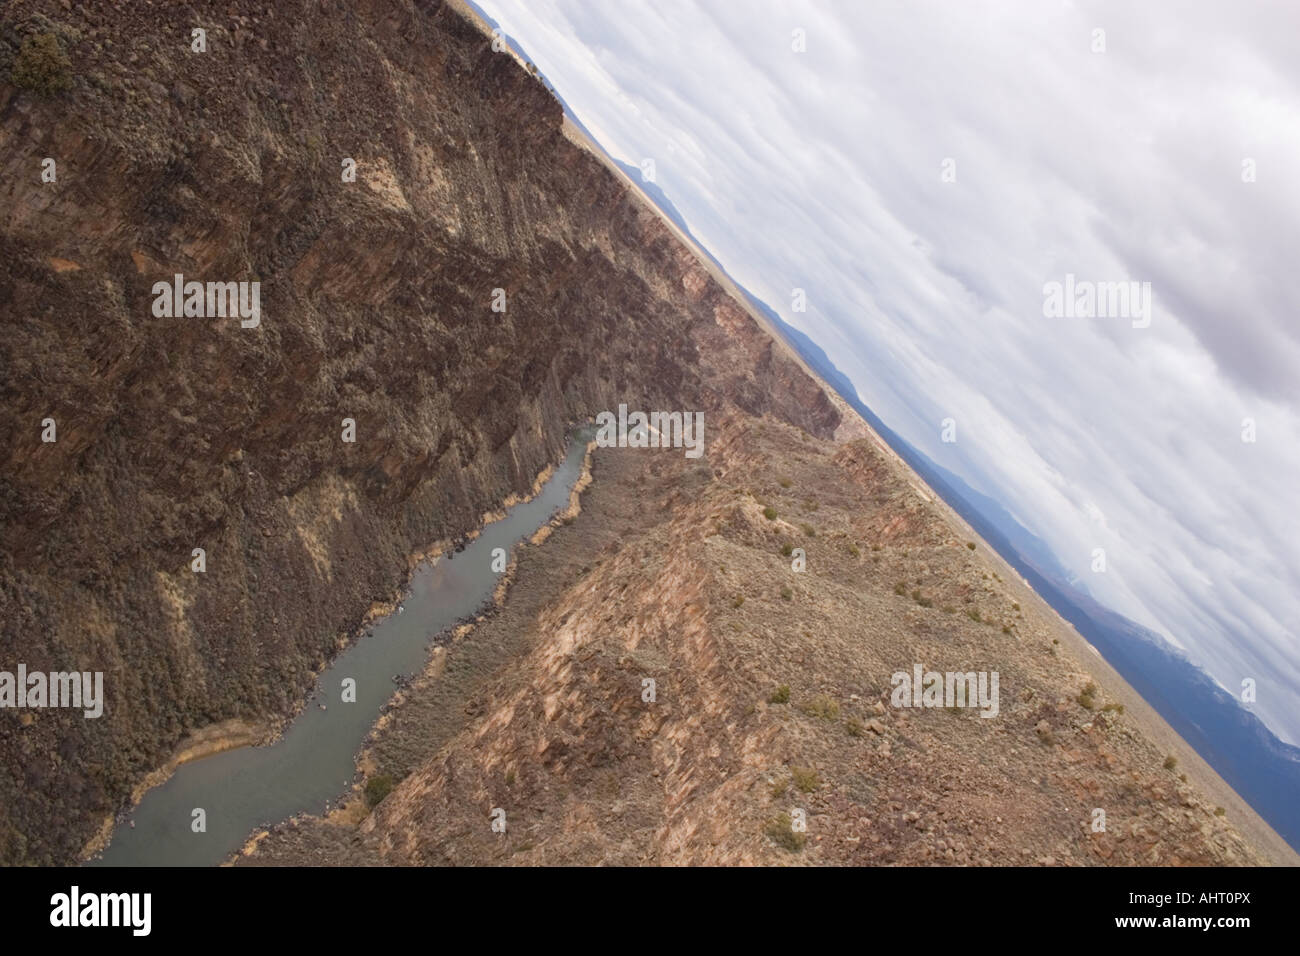 A river winding down a canyon Stock Photo